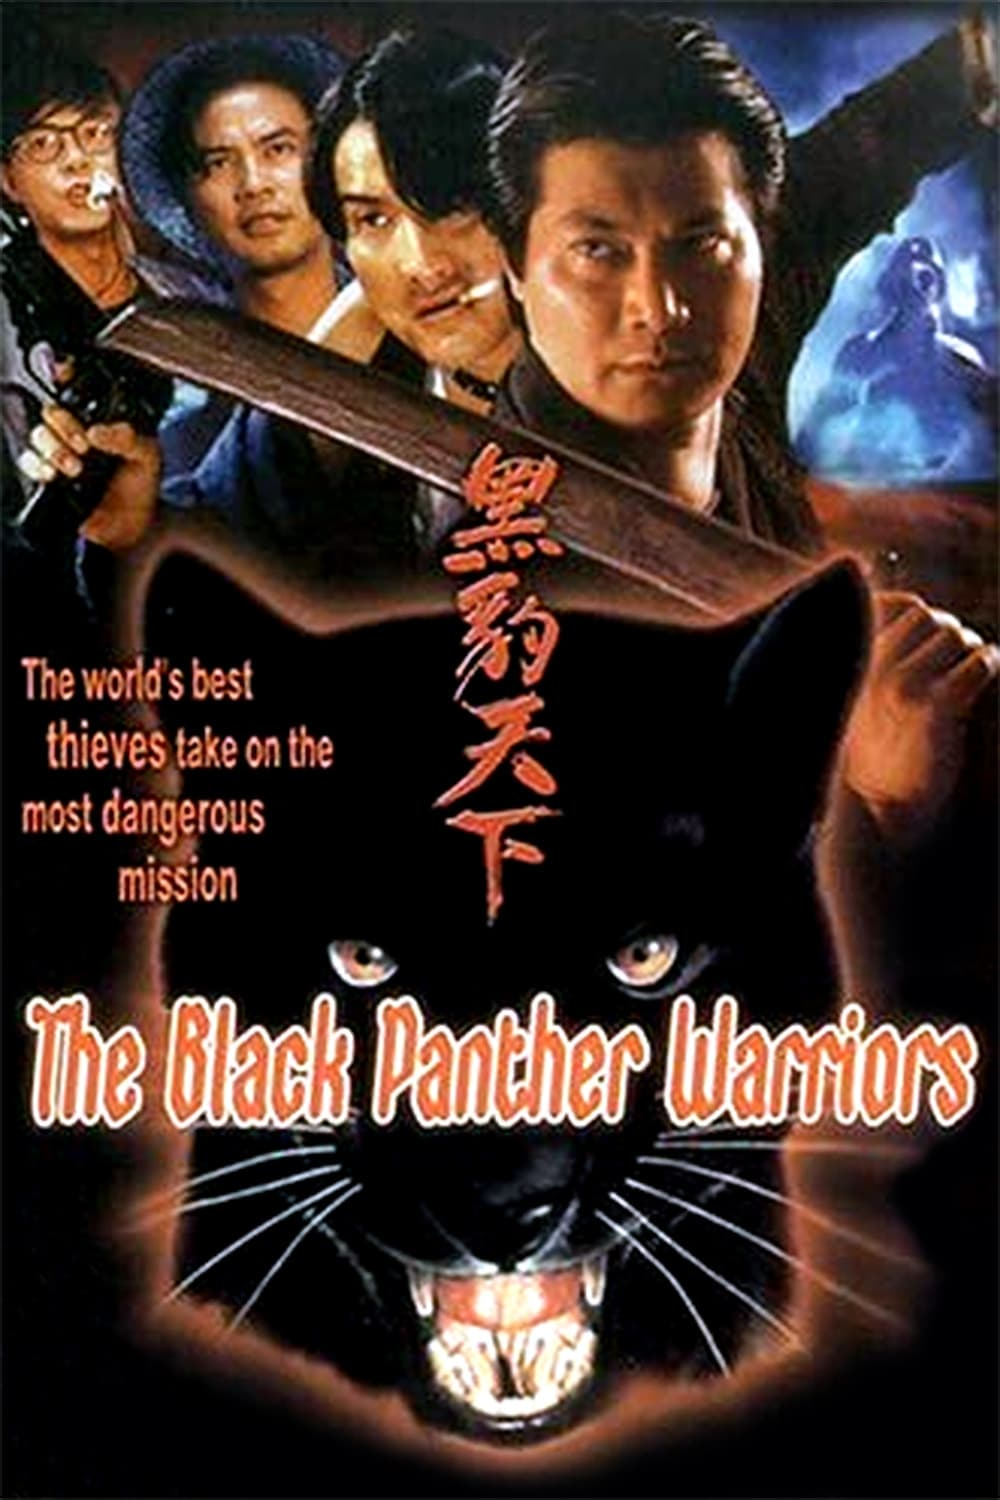 The Black Panther Warriors (1993)